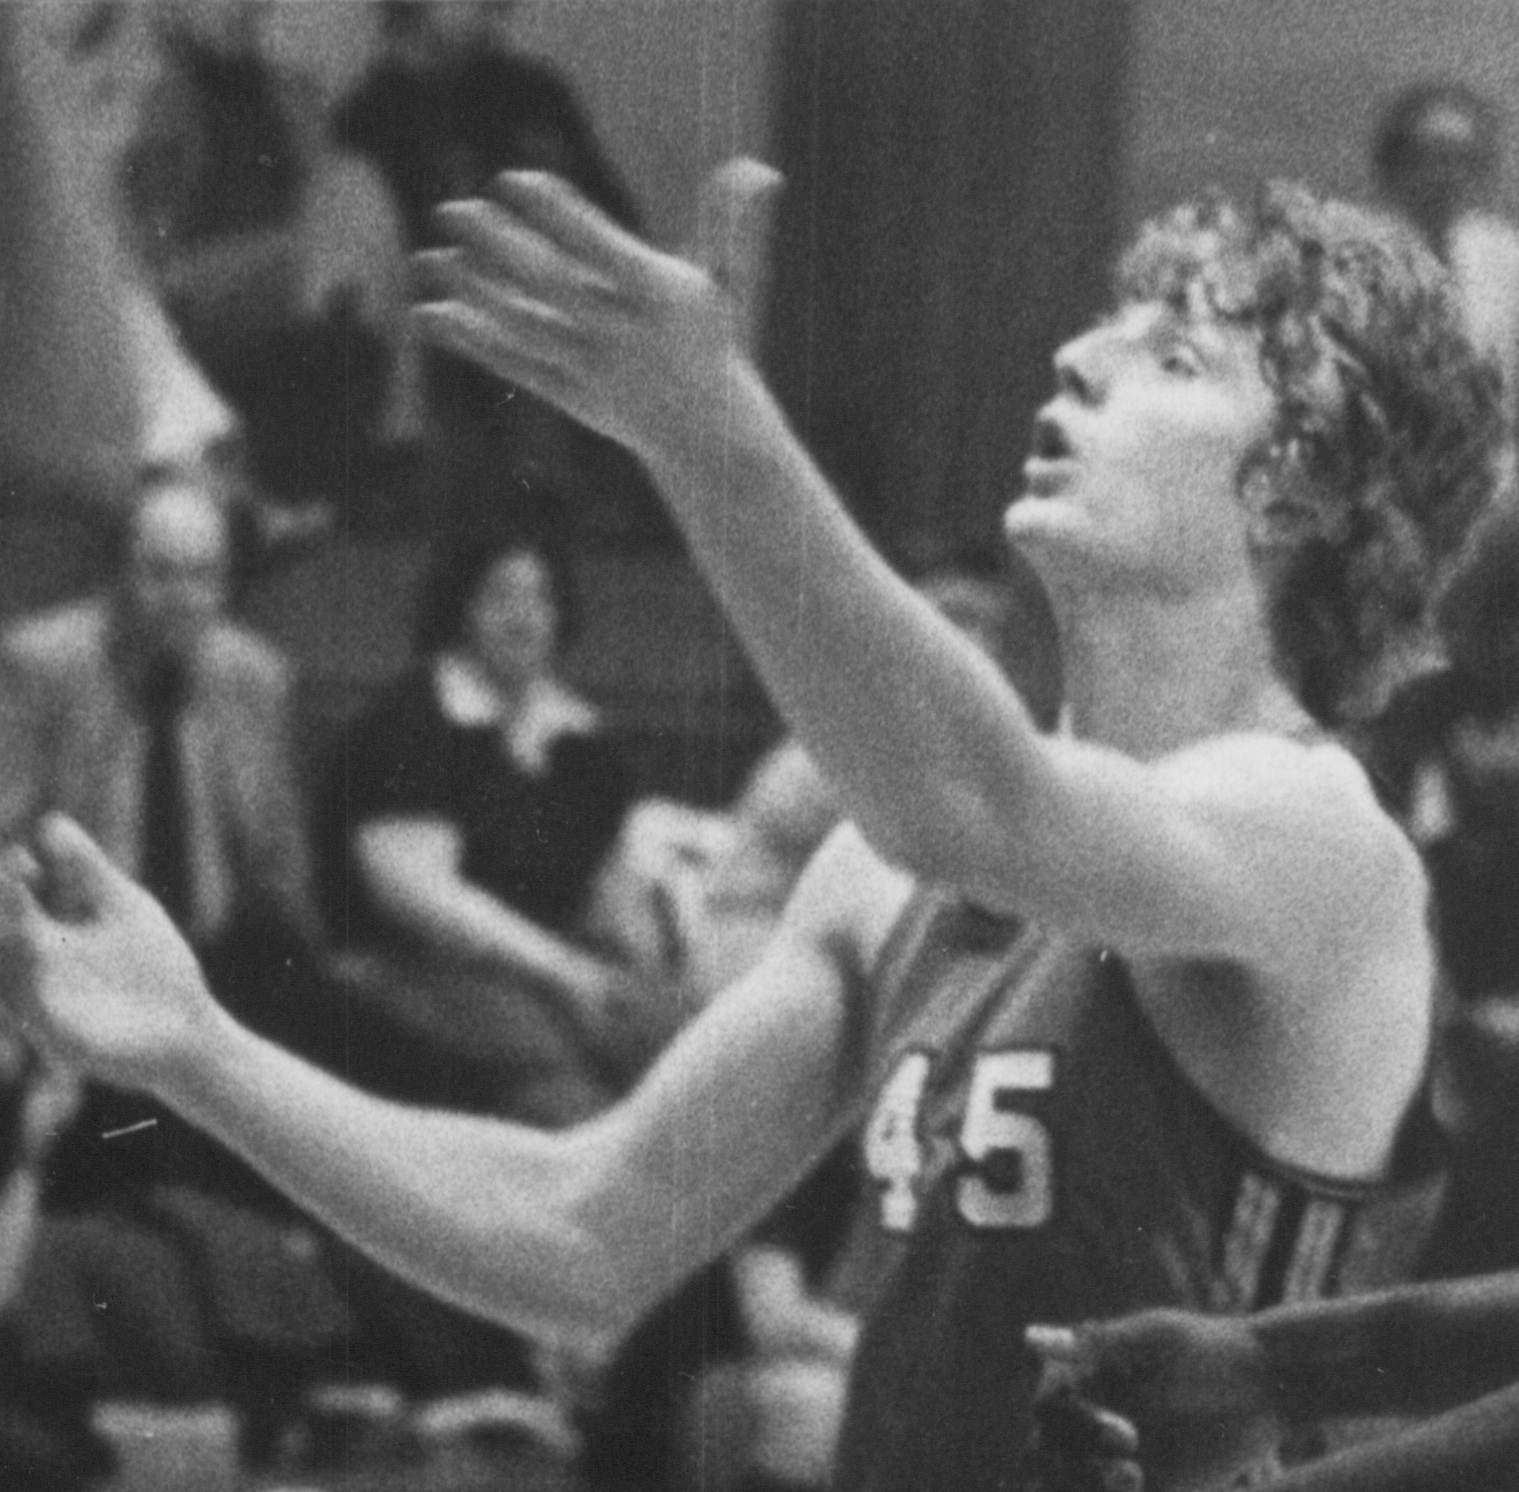 Bethany Lutheran College's 1975-1976 men's basketball player, Mike Schlomer